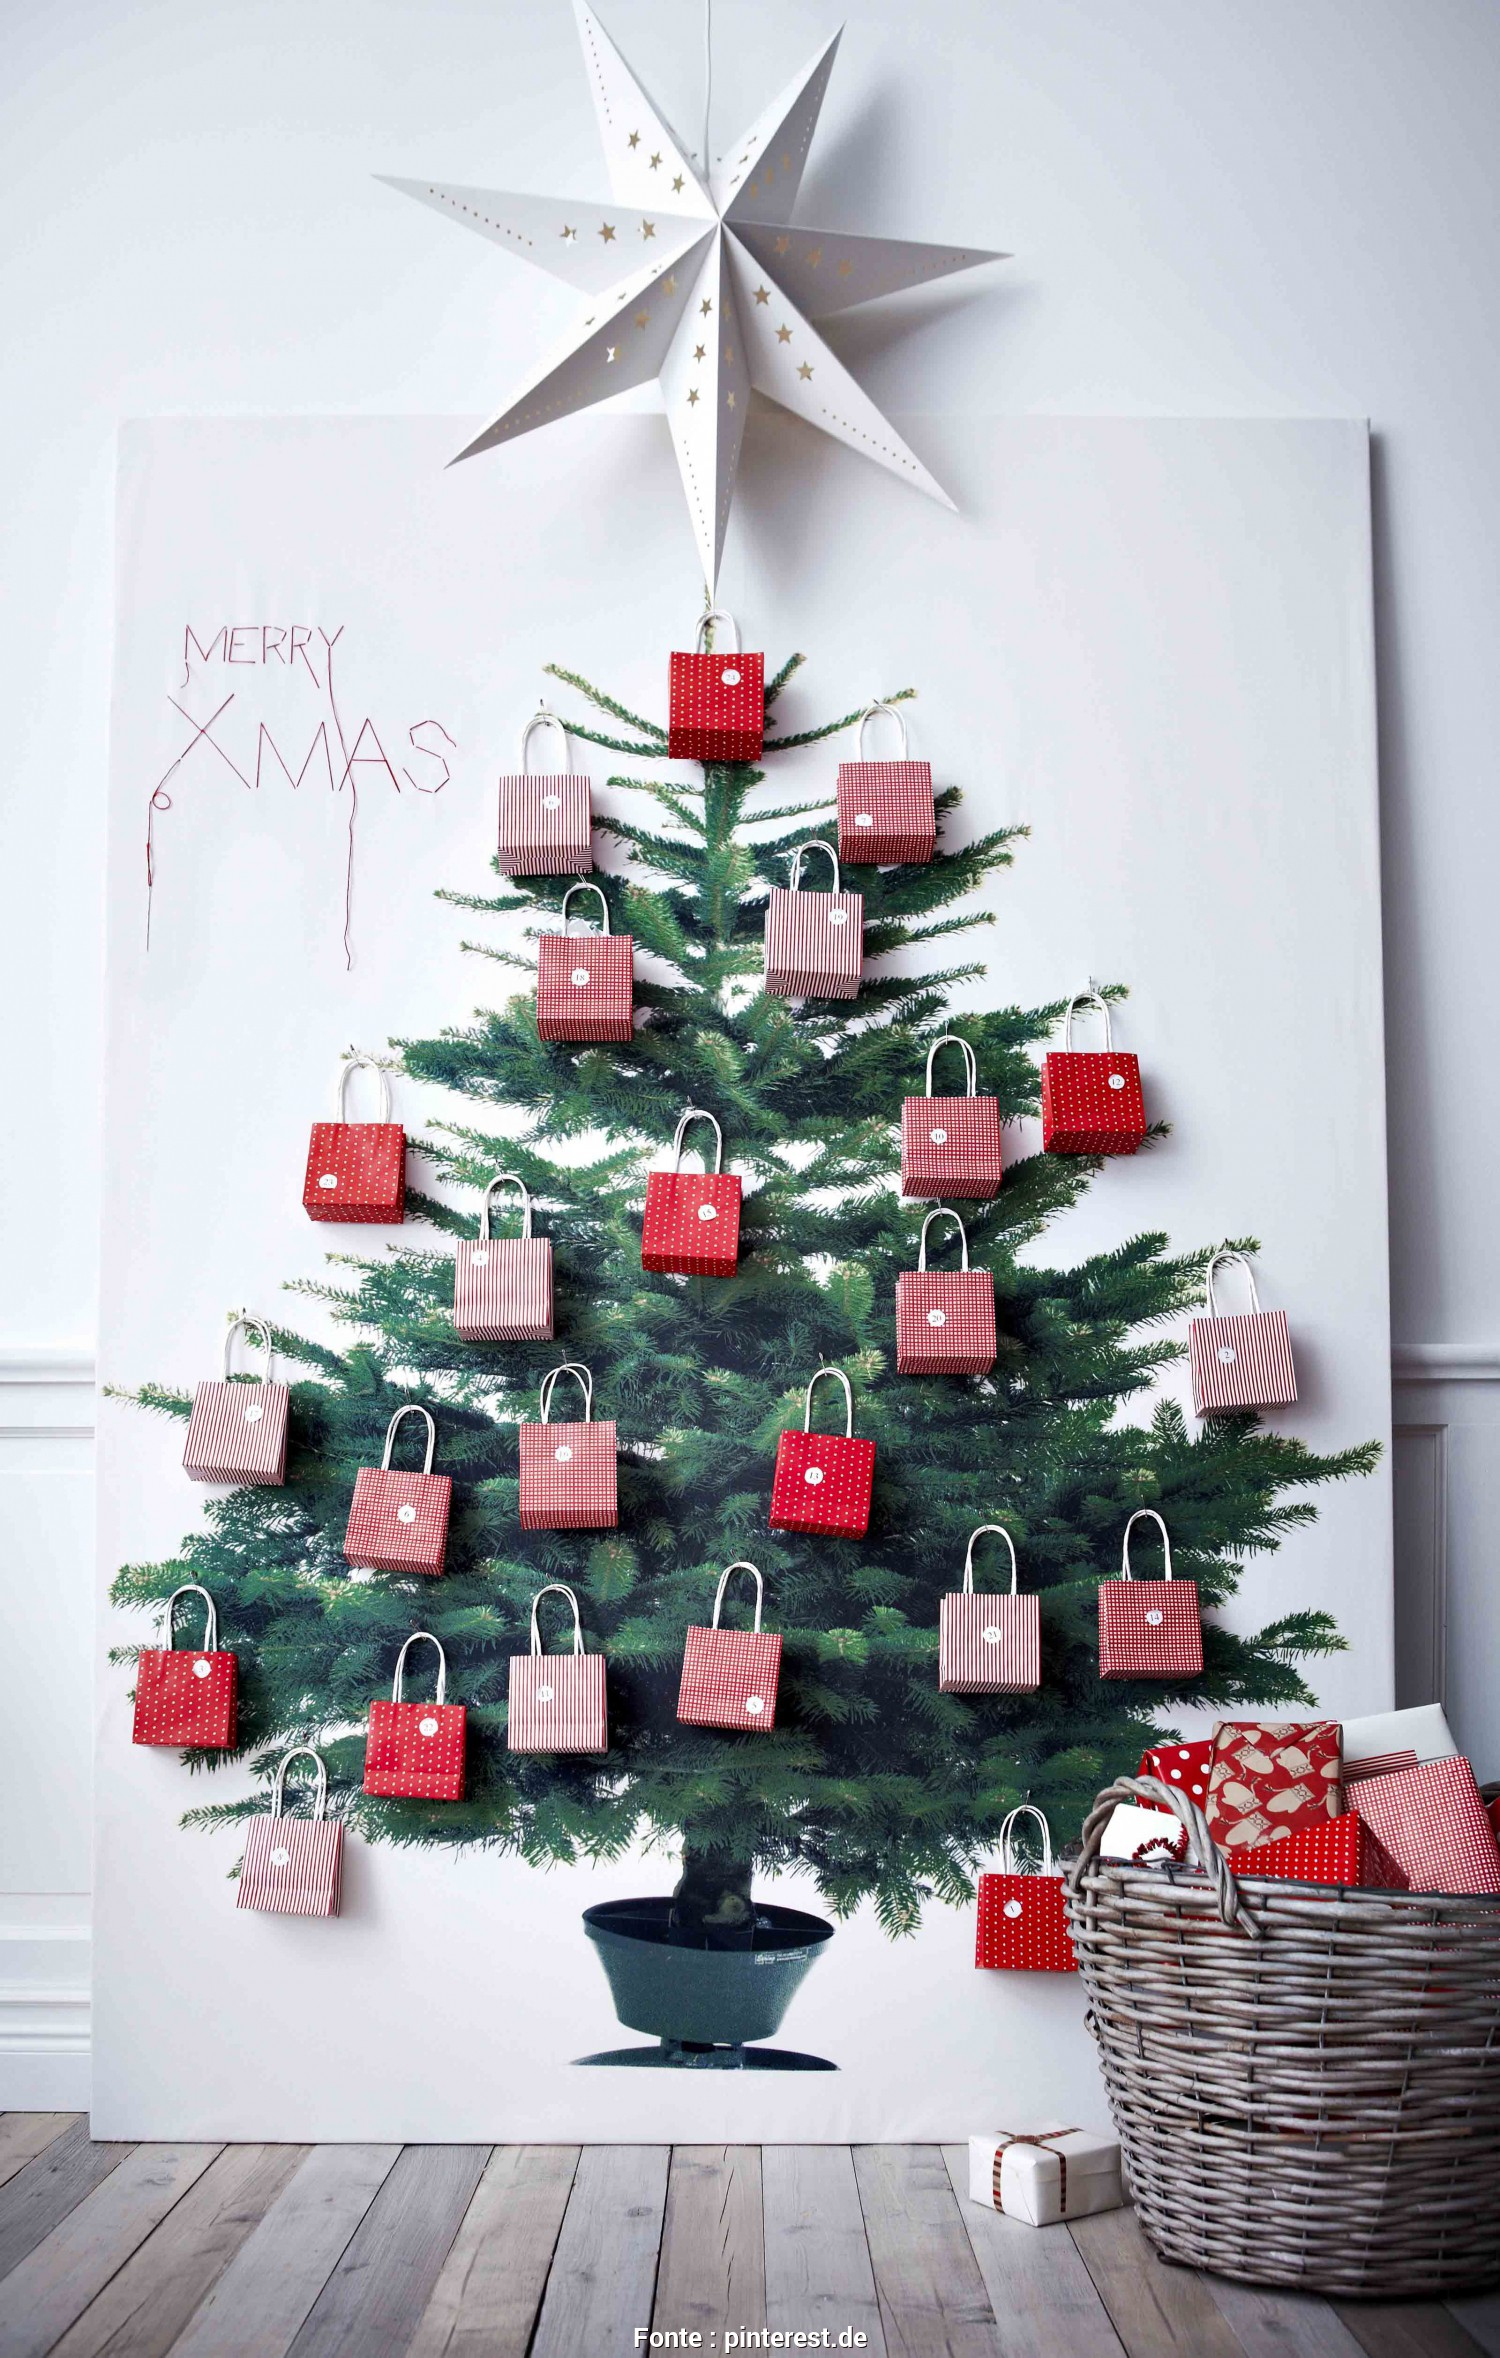 Ikea Stoffe Weihnachtsbaum, Elegante Christmas Tree...Good, To Display A Giving Tree, Our Ward...And Could Easily Be, In, RS Closet